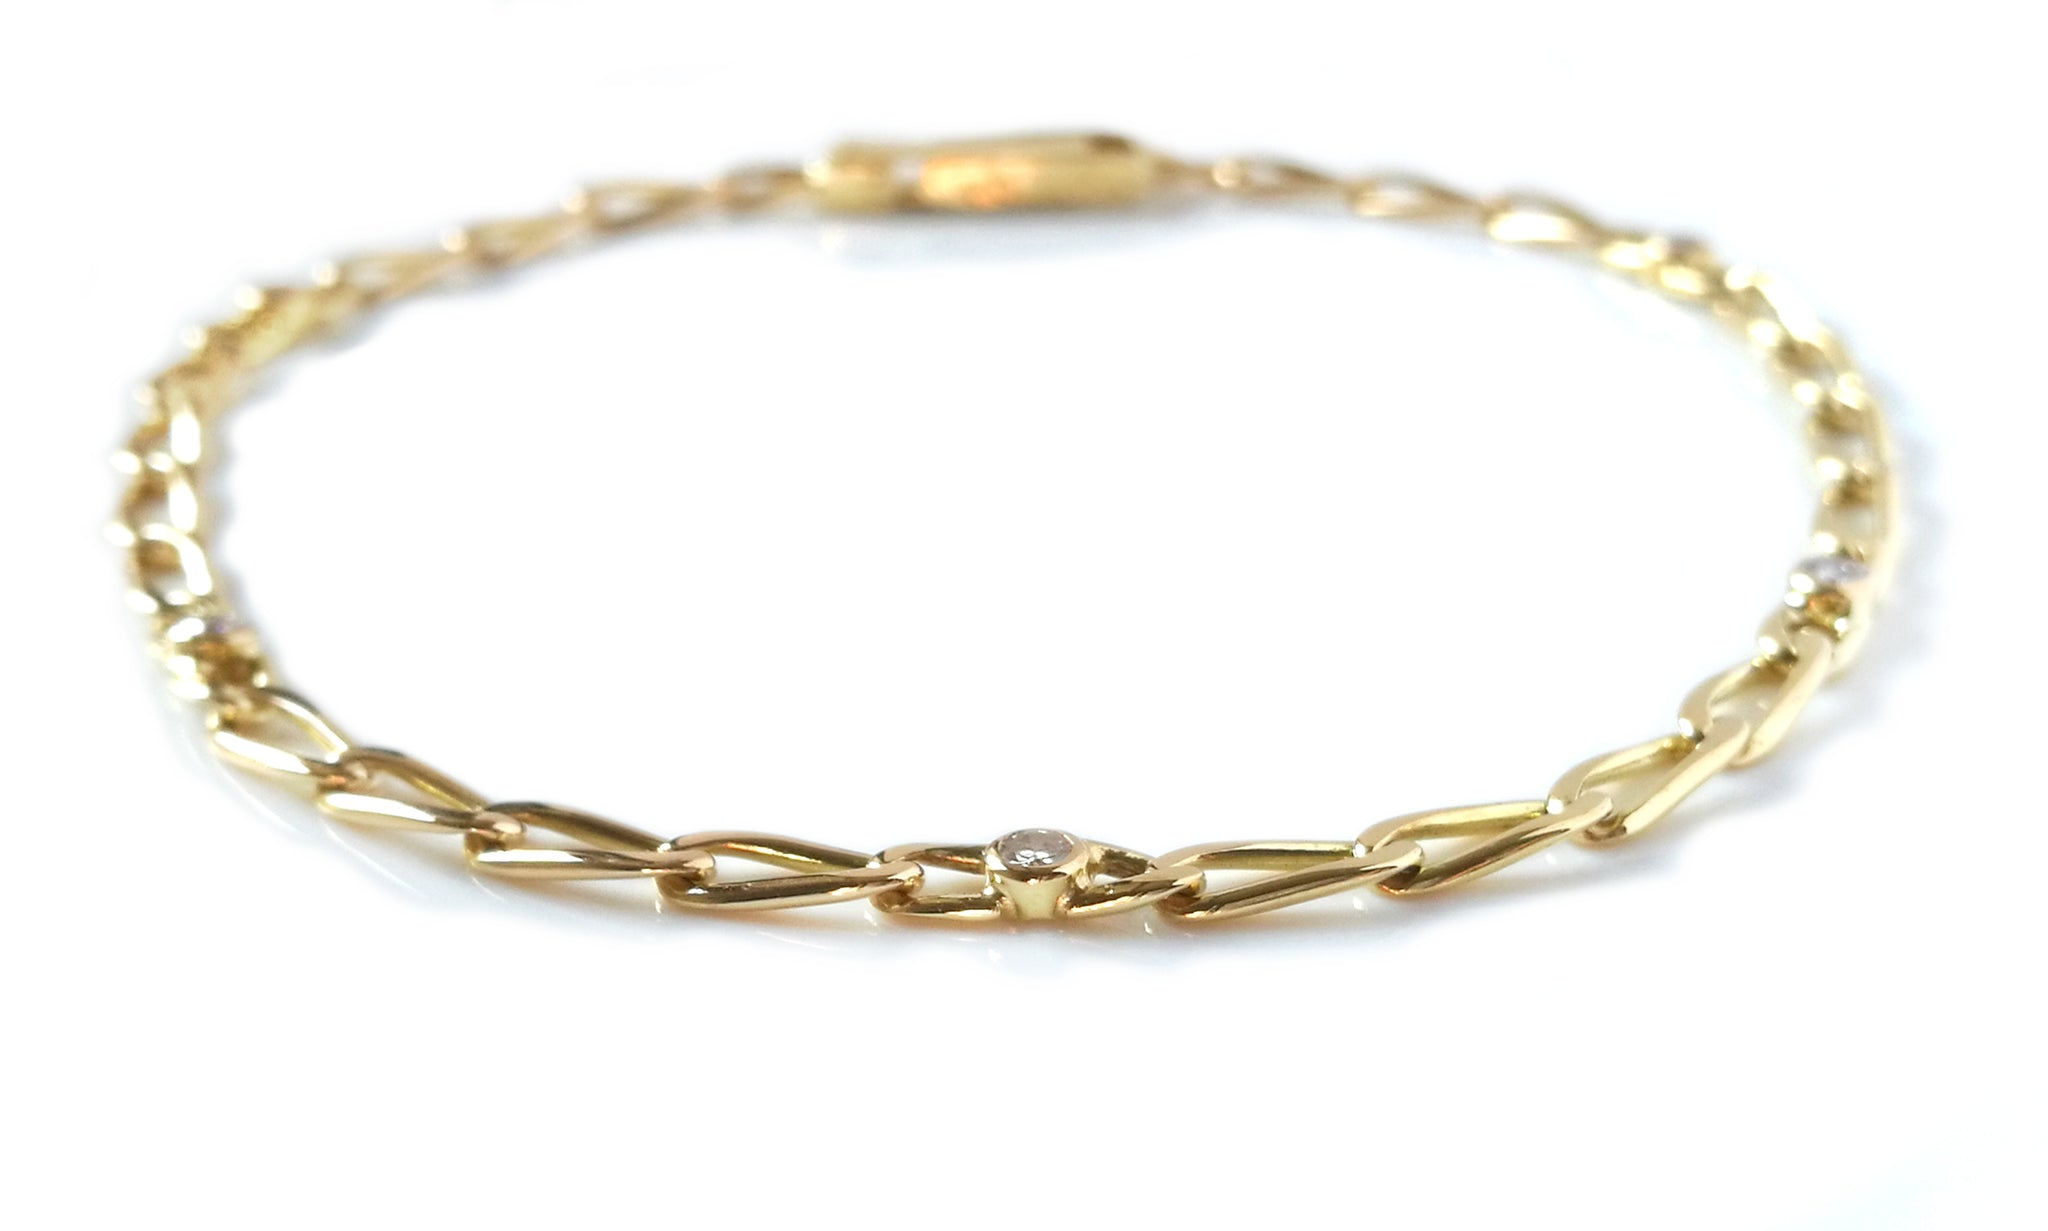 Vintage 1990s Cartier Diamond Link Bracelet in 18k Yellow Gold, 7.5 inch